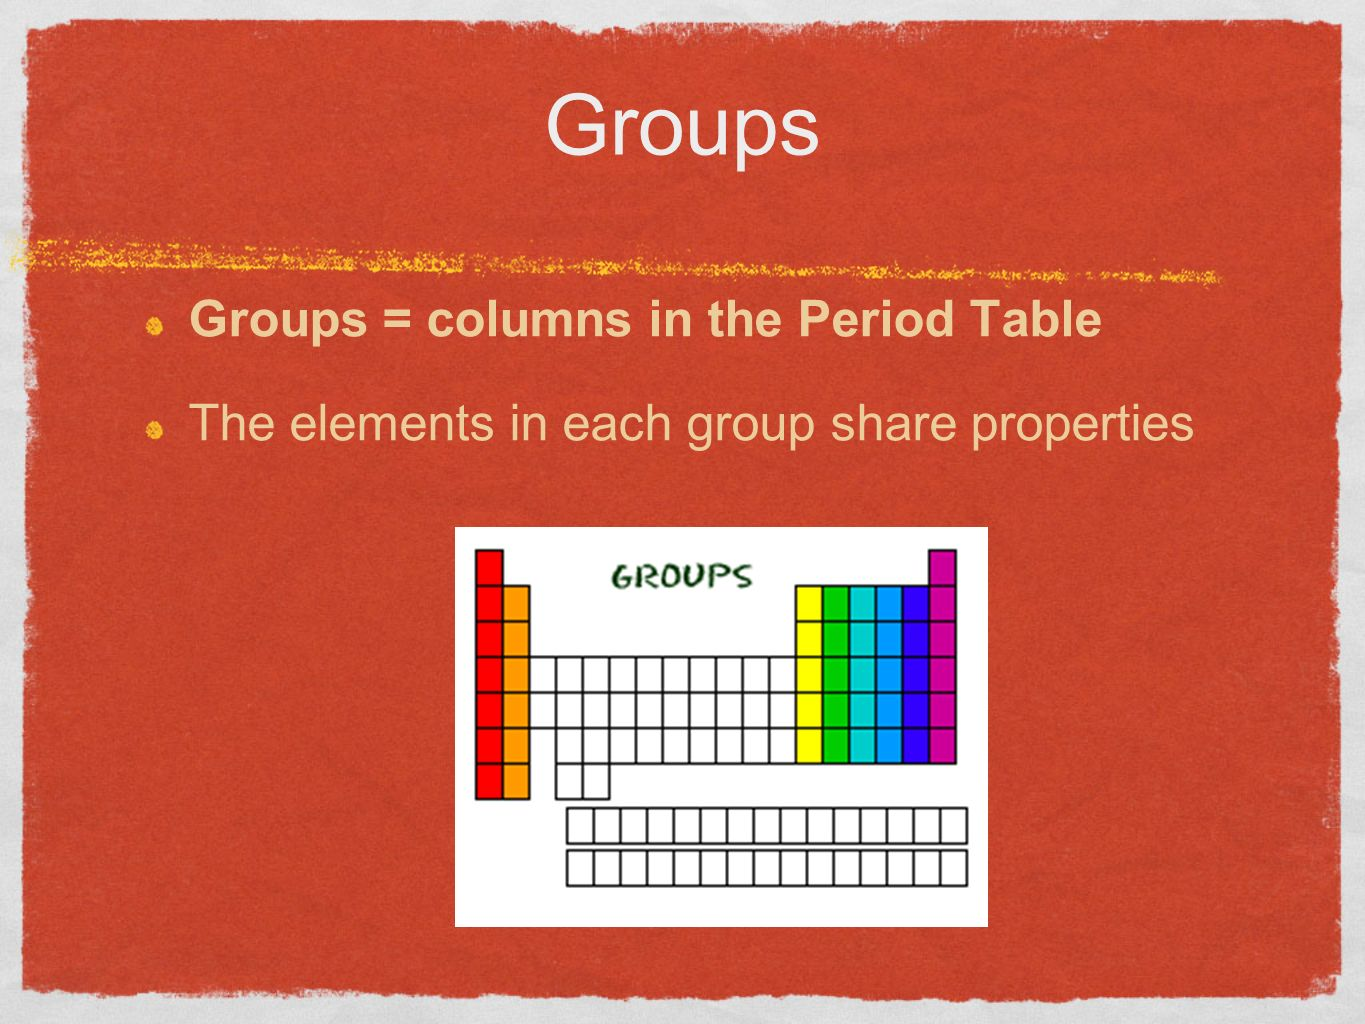 Getting to know the periodic table get out a textbook and turn to 3 groups groups columns in the period table the elements in each group share properties gamestrikefo Choice Image